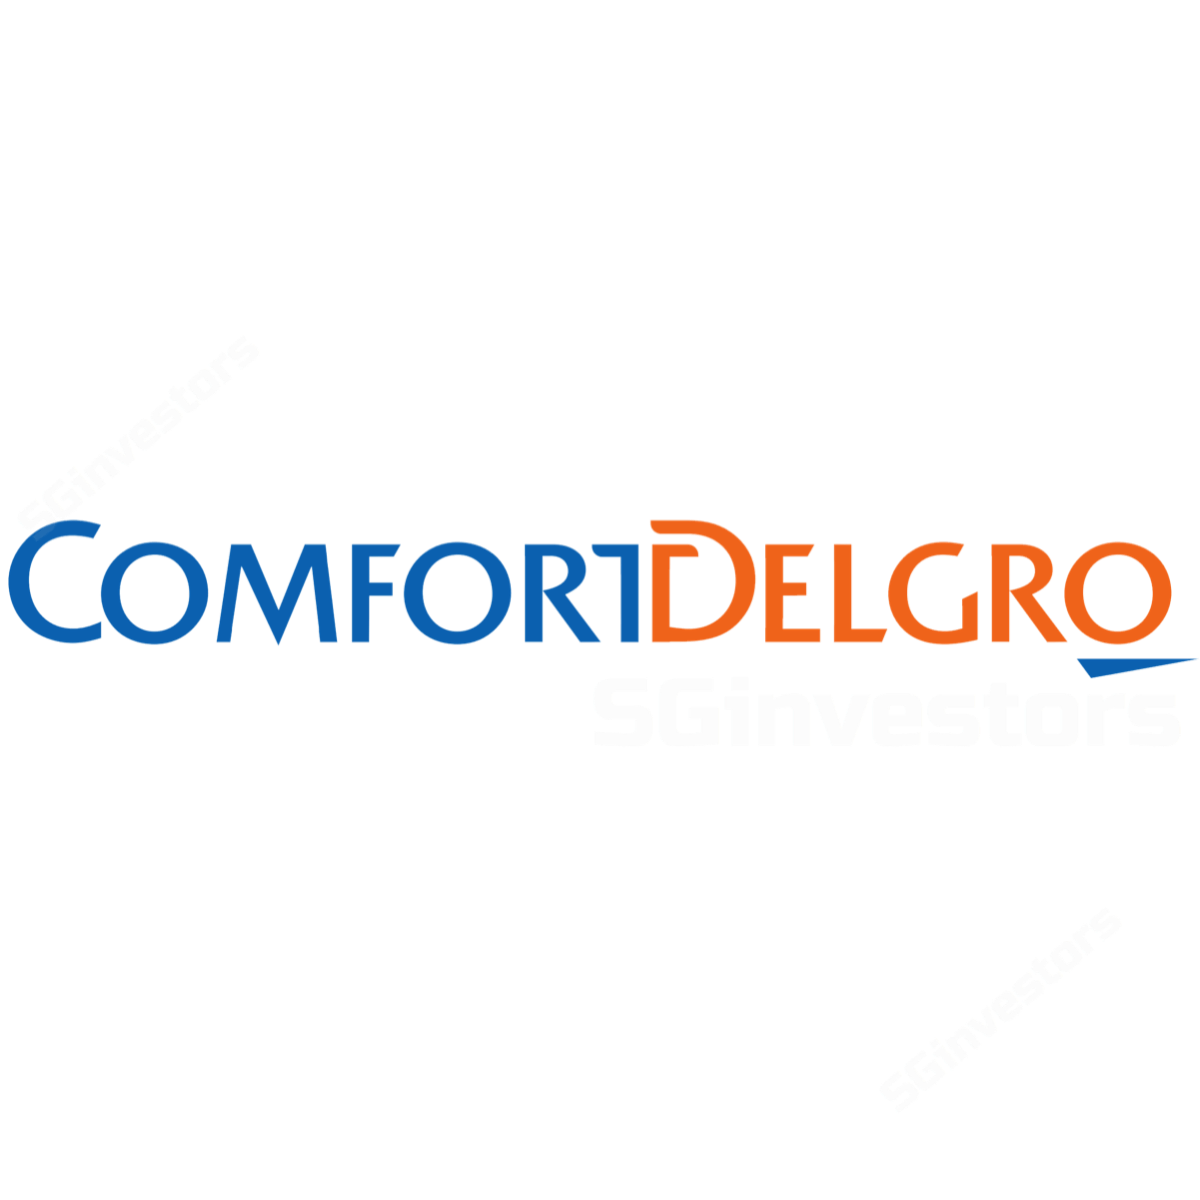 ComfortDelGro - OCBC Investment 2017-08-24: Collaboration Better Than Competition